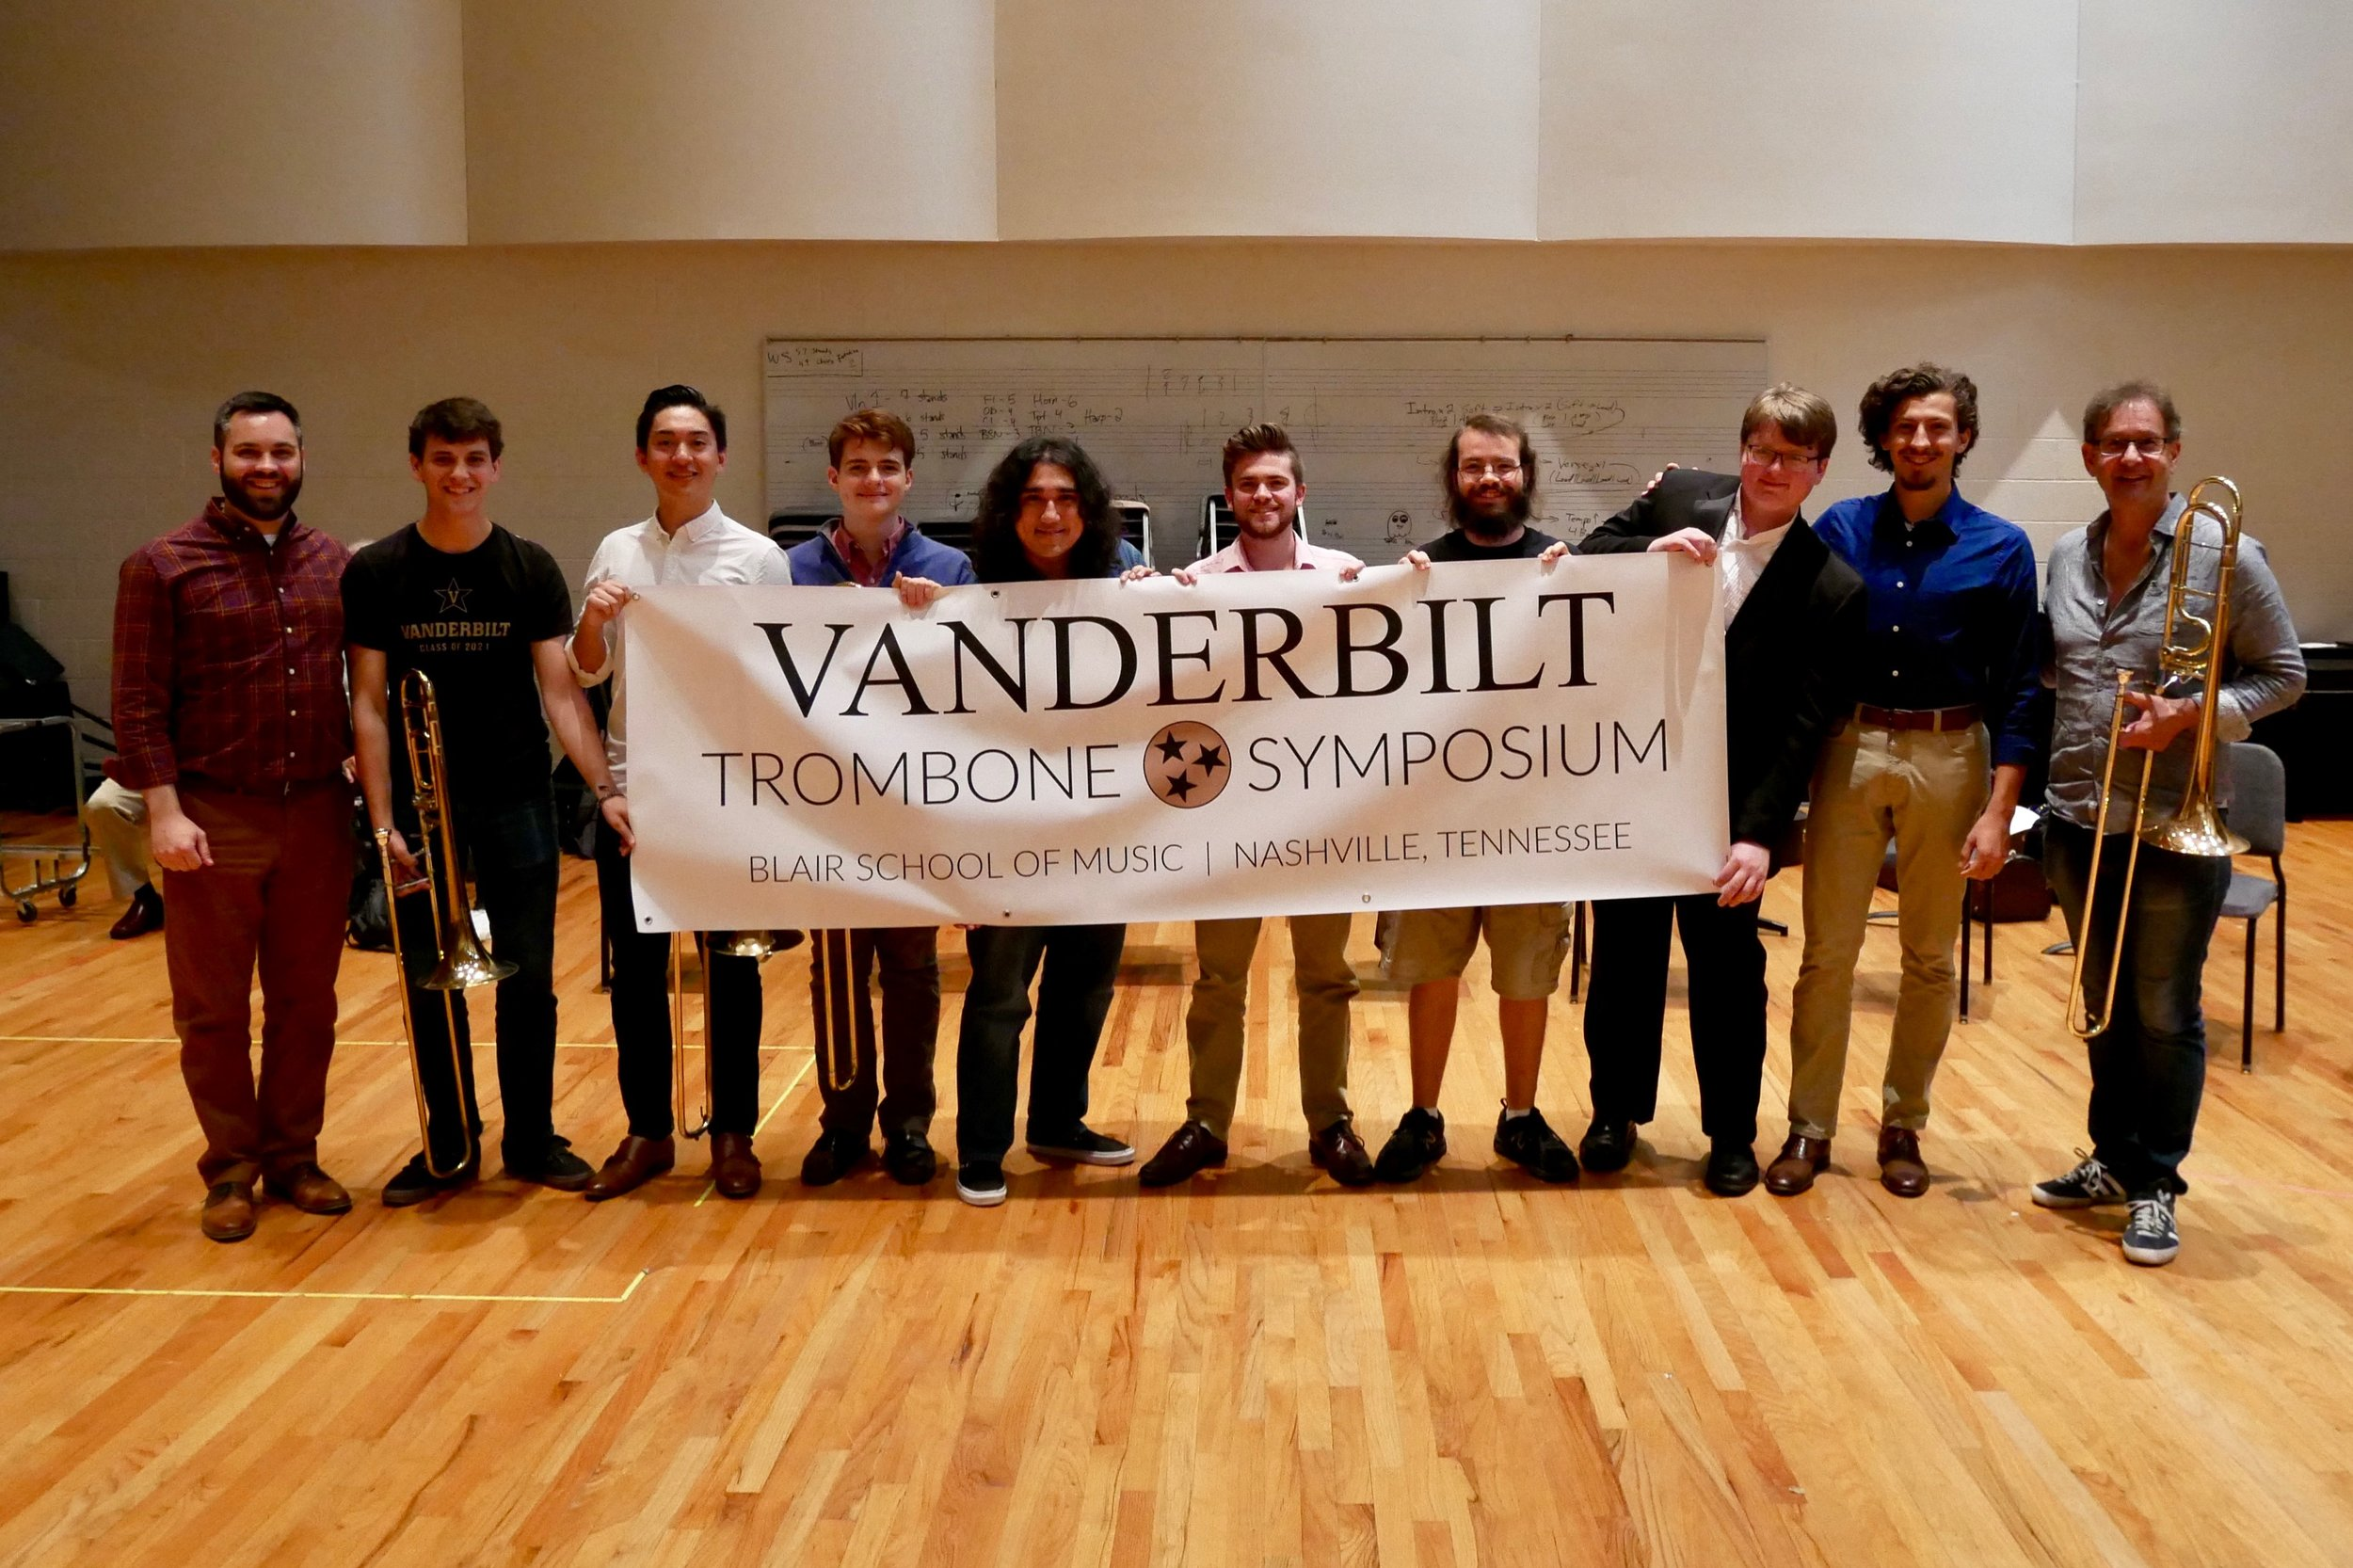 With guest artist Ian Bousfield celebrating the 1st ever Vanderbilt Trombone Symposium